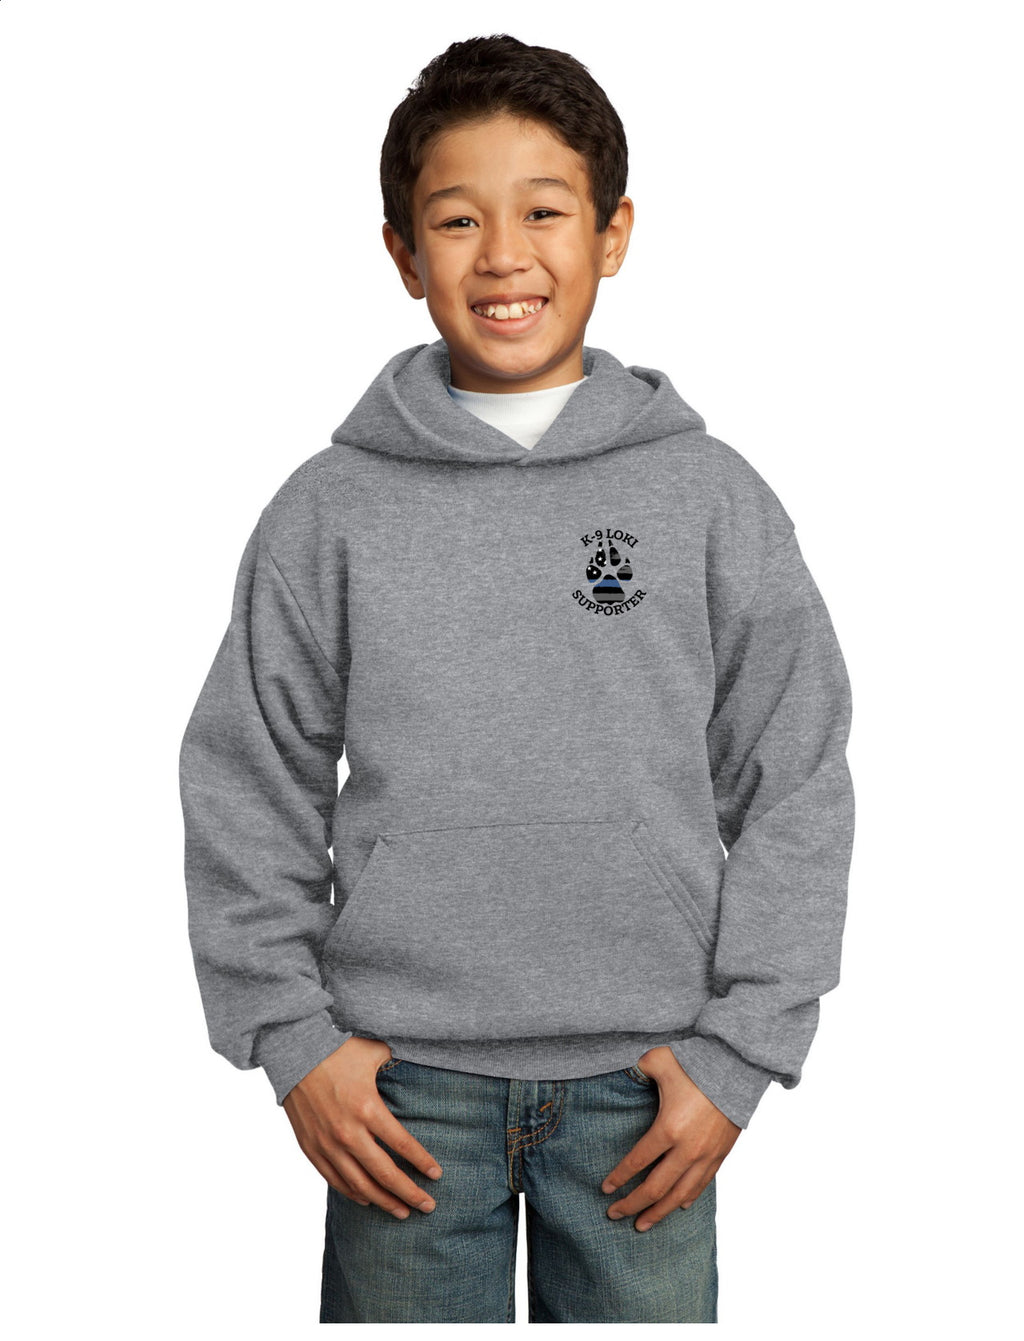 K9 Loki Supporter - Youth Hoodie